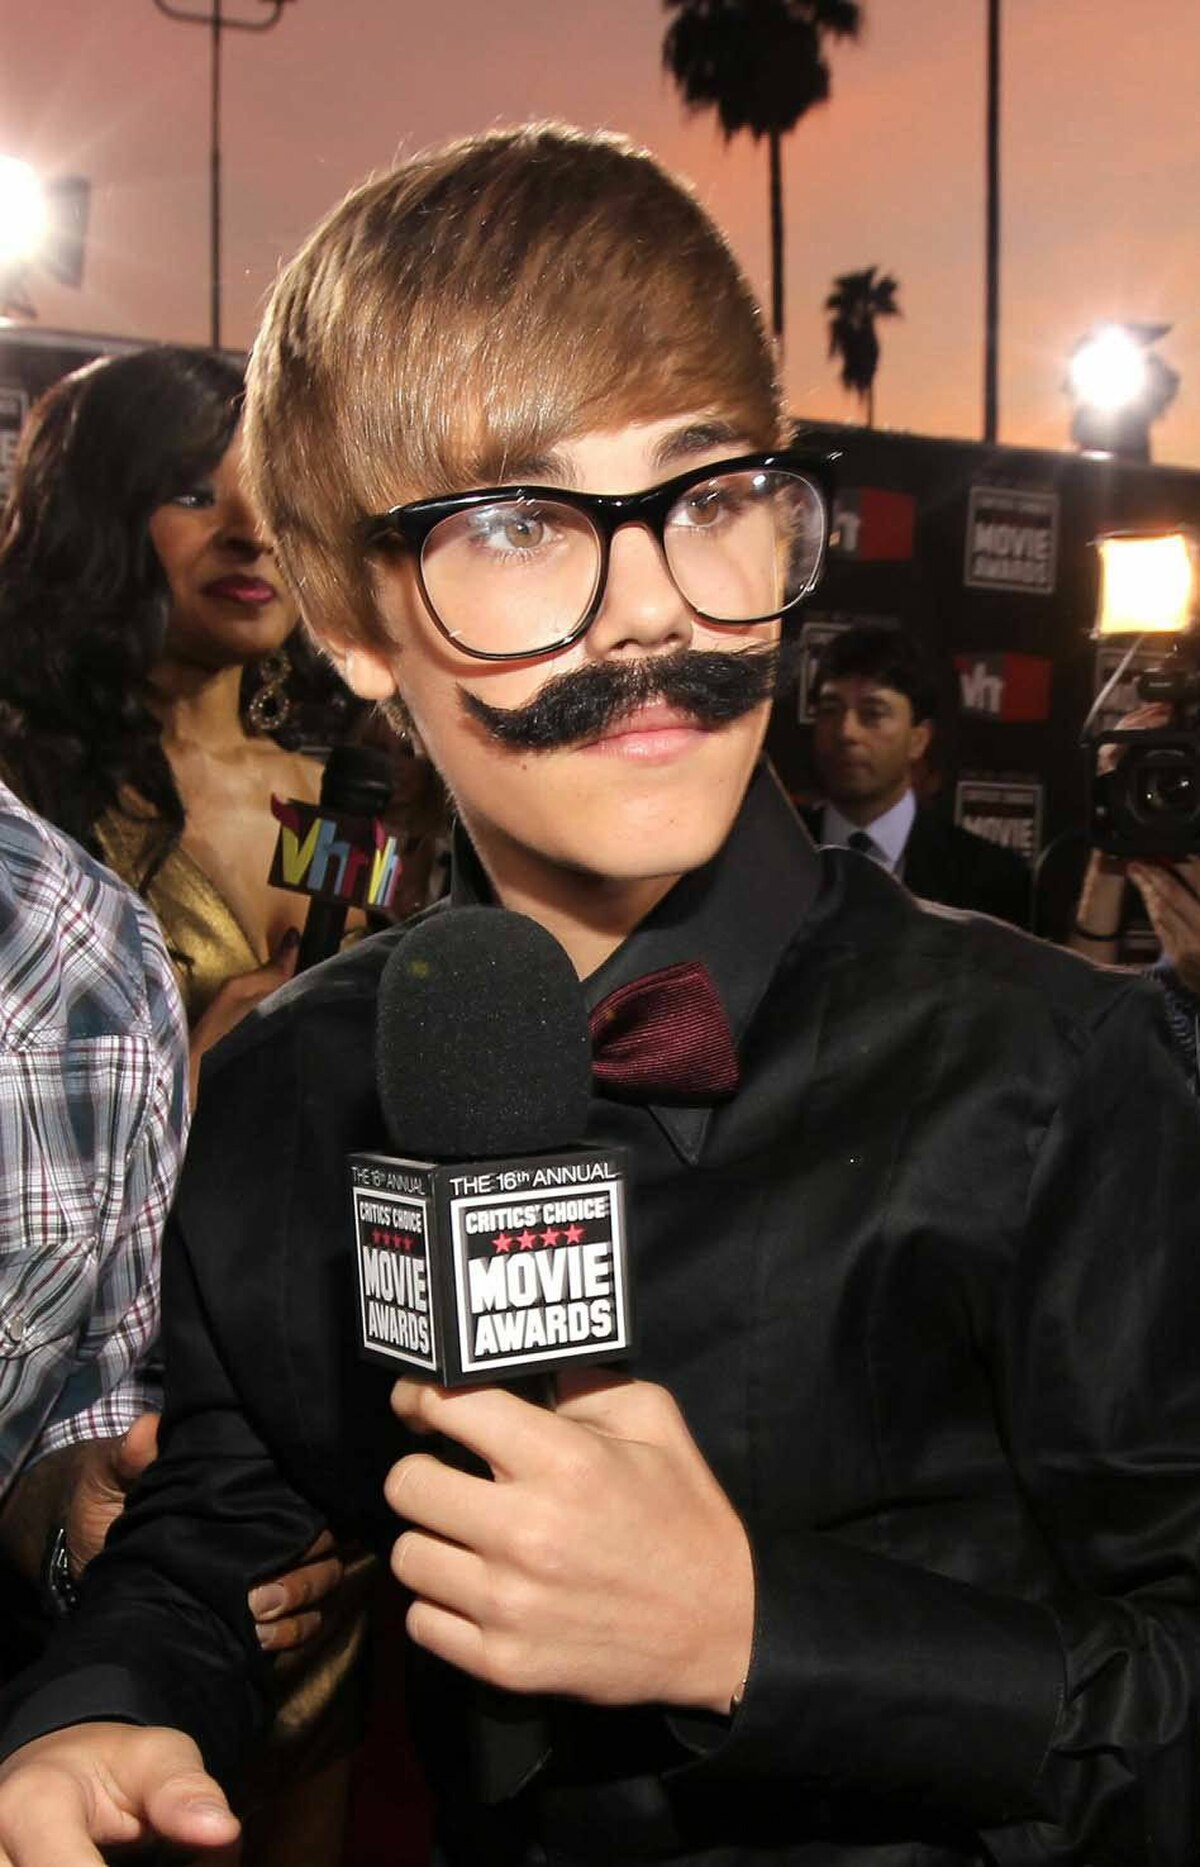 On Jan. 14, Bieber unveiled his first facial hair at the Critics' Choice Movie Awards in Los Angeles.